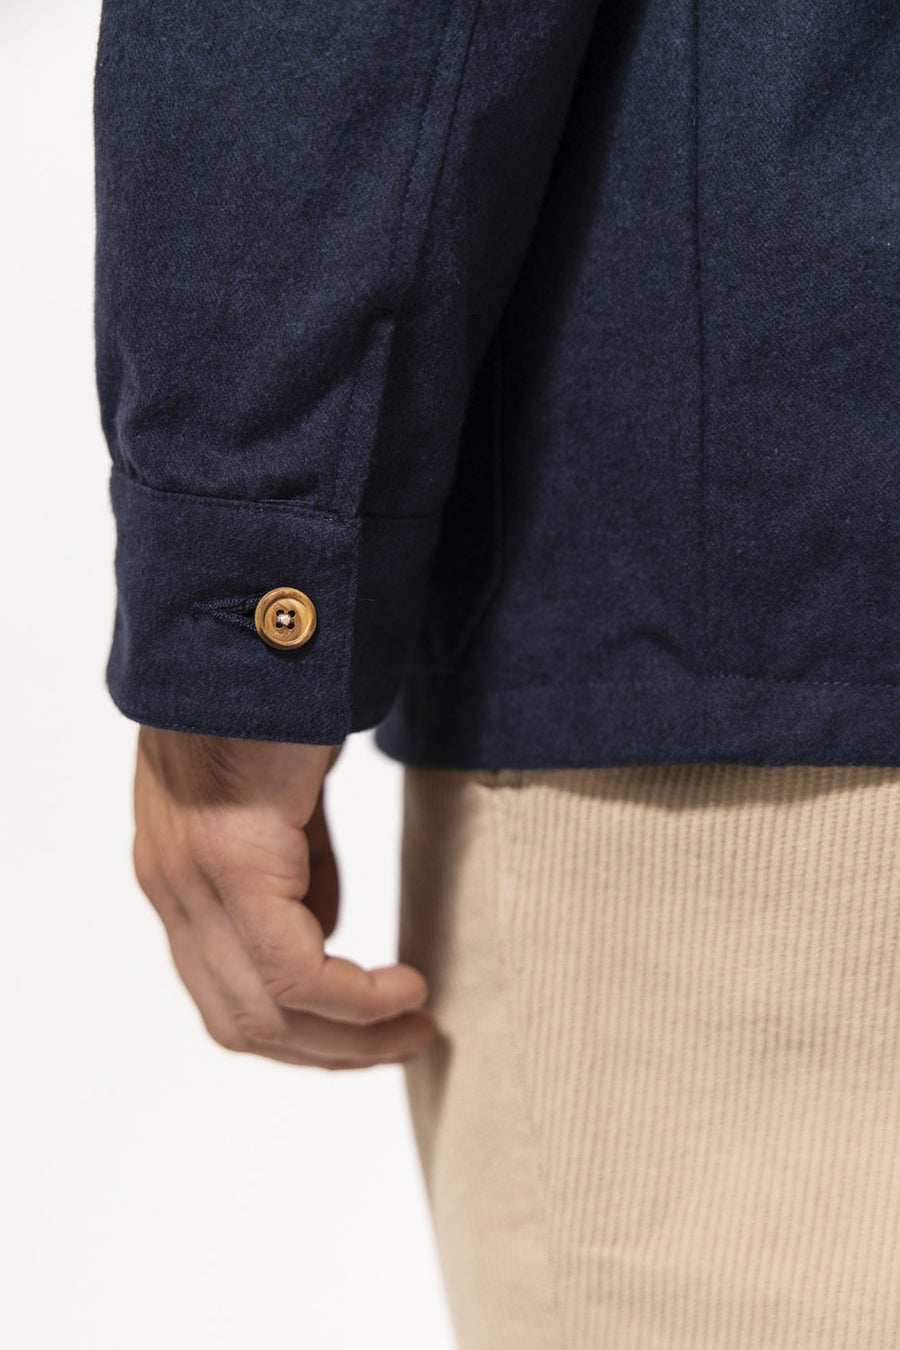 Unfeigned Gear Premium Wool Work Jacket Navy Cloth